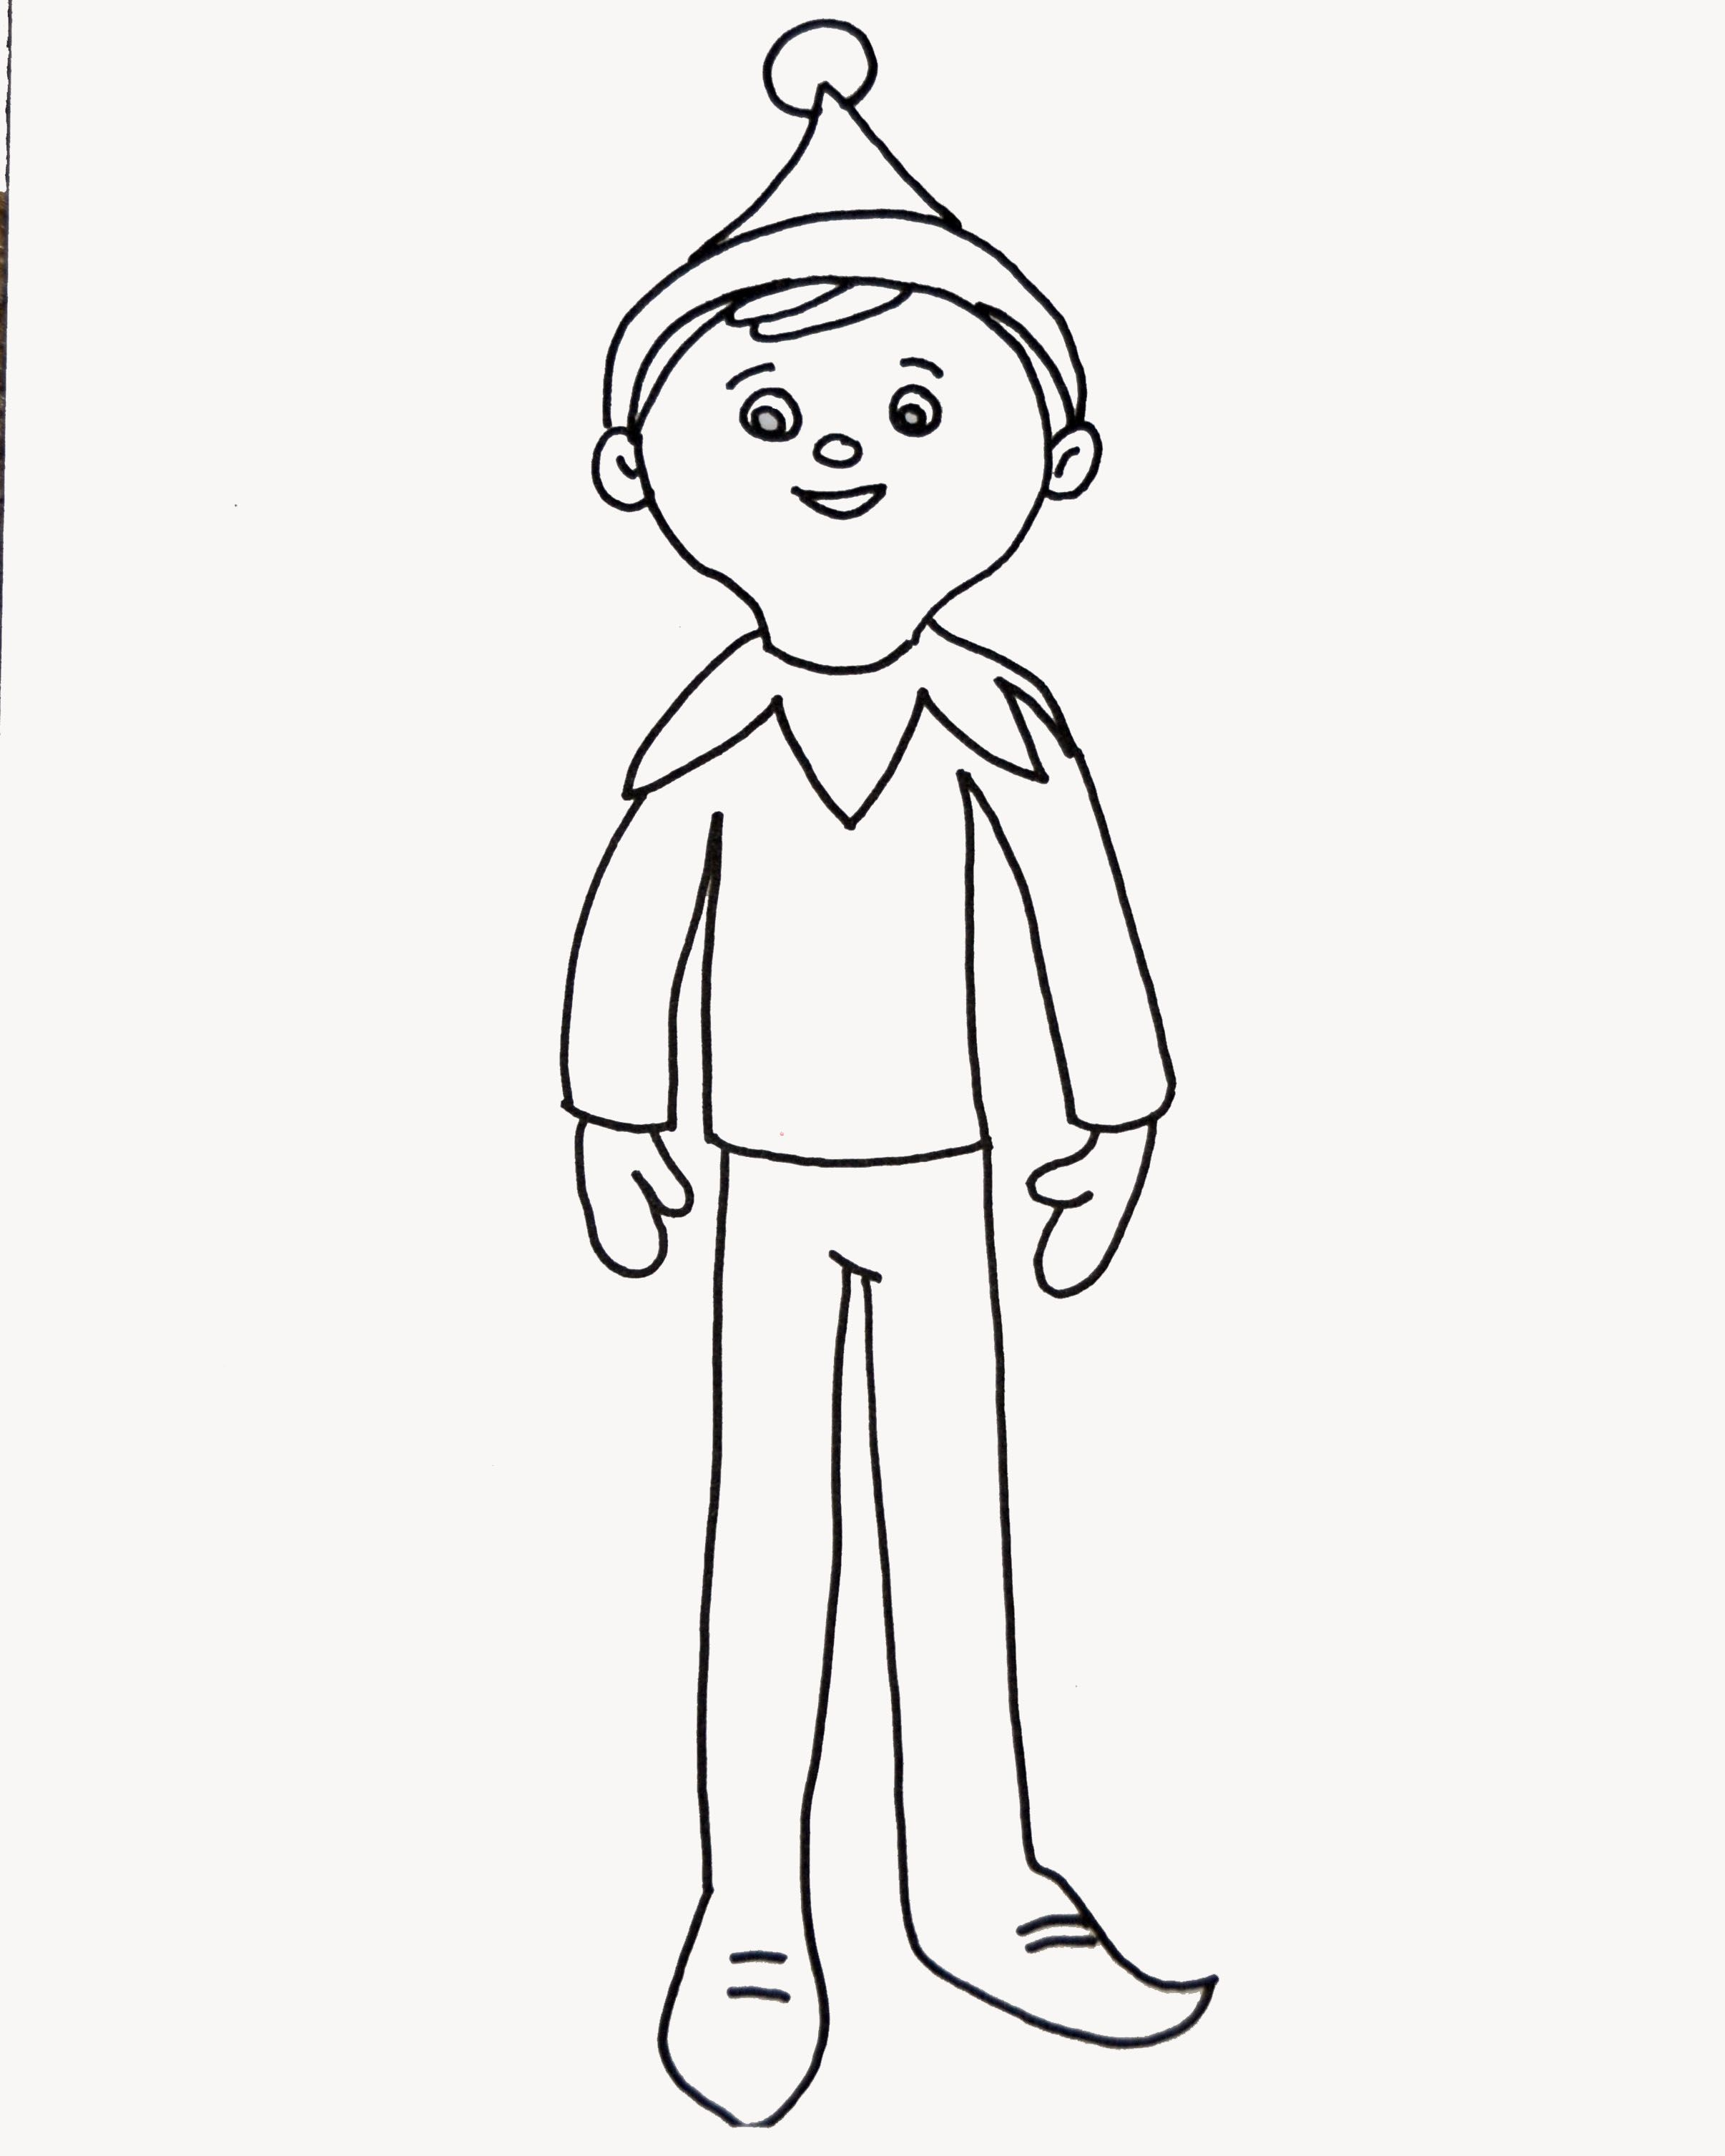 Printable coloring pages elf on the shelf - Elf On The Shelf Coloring Page For Elfie And The Kids To Colour In